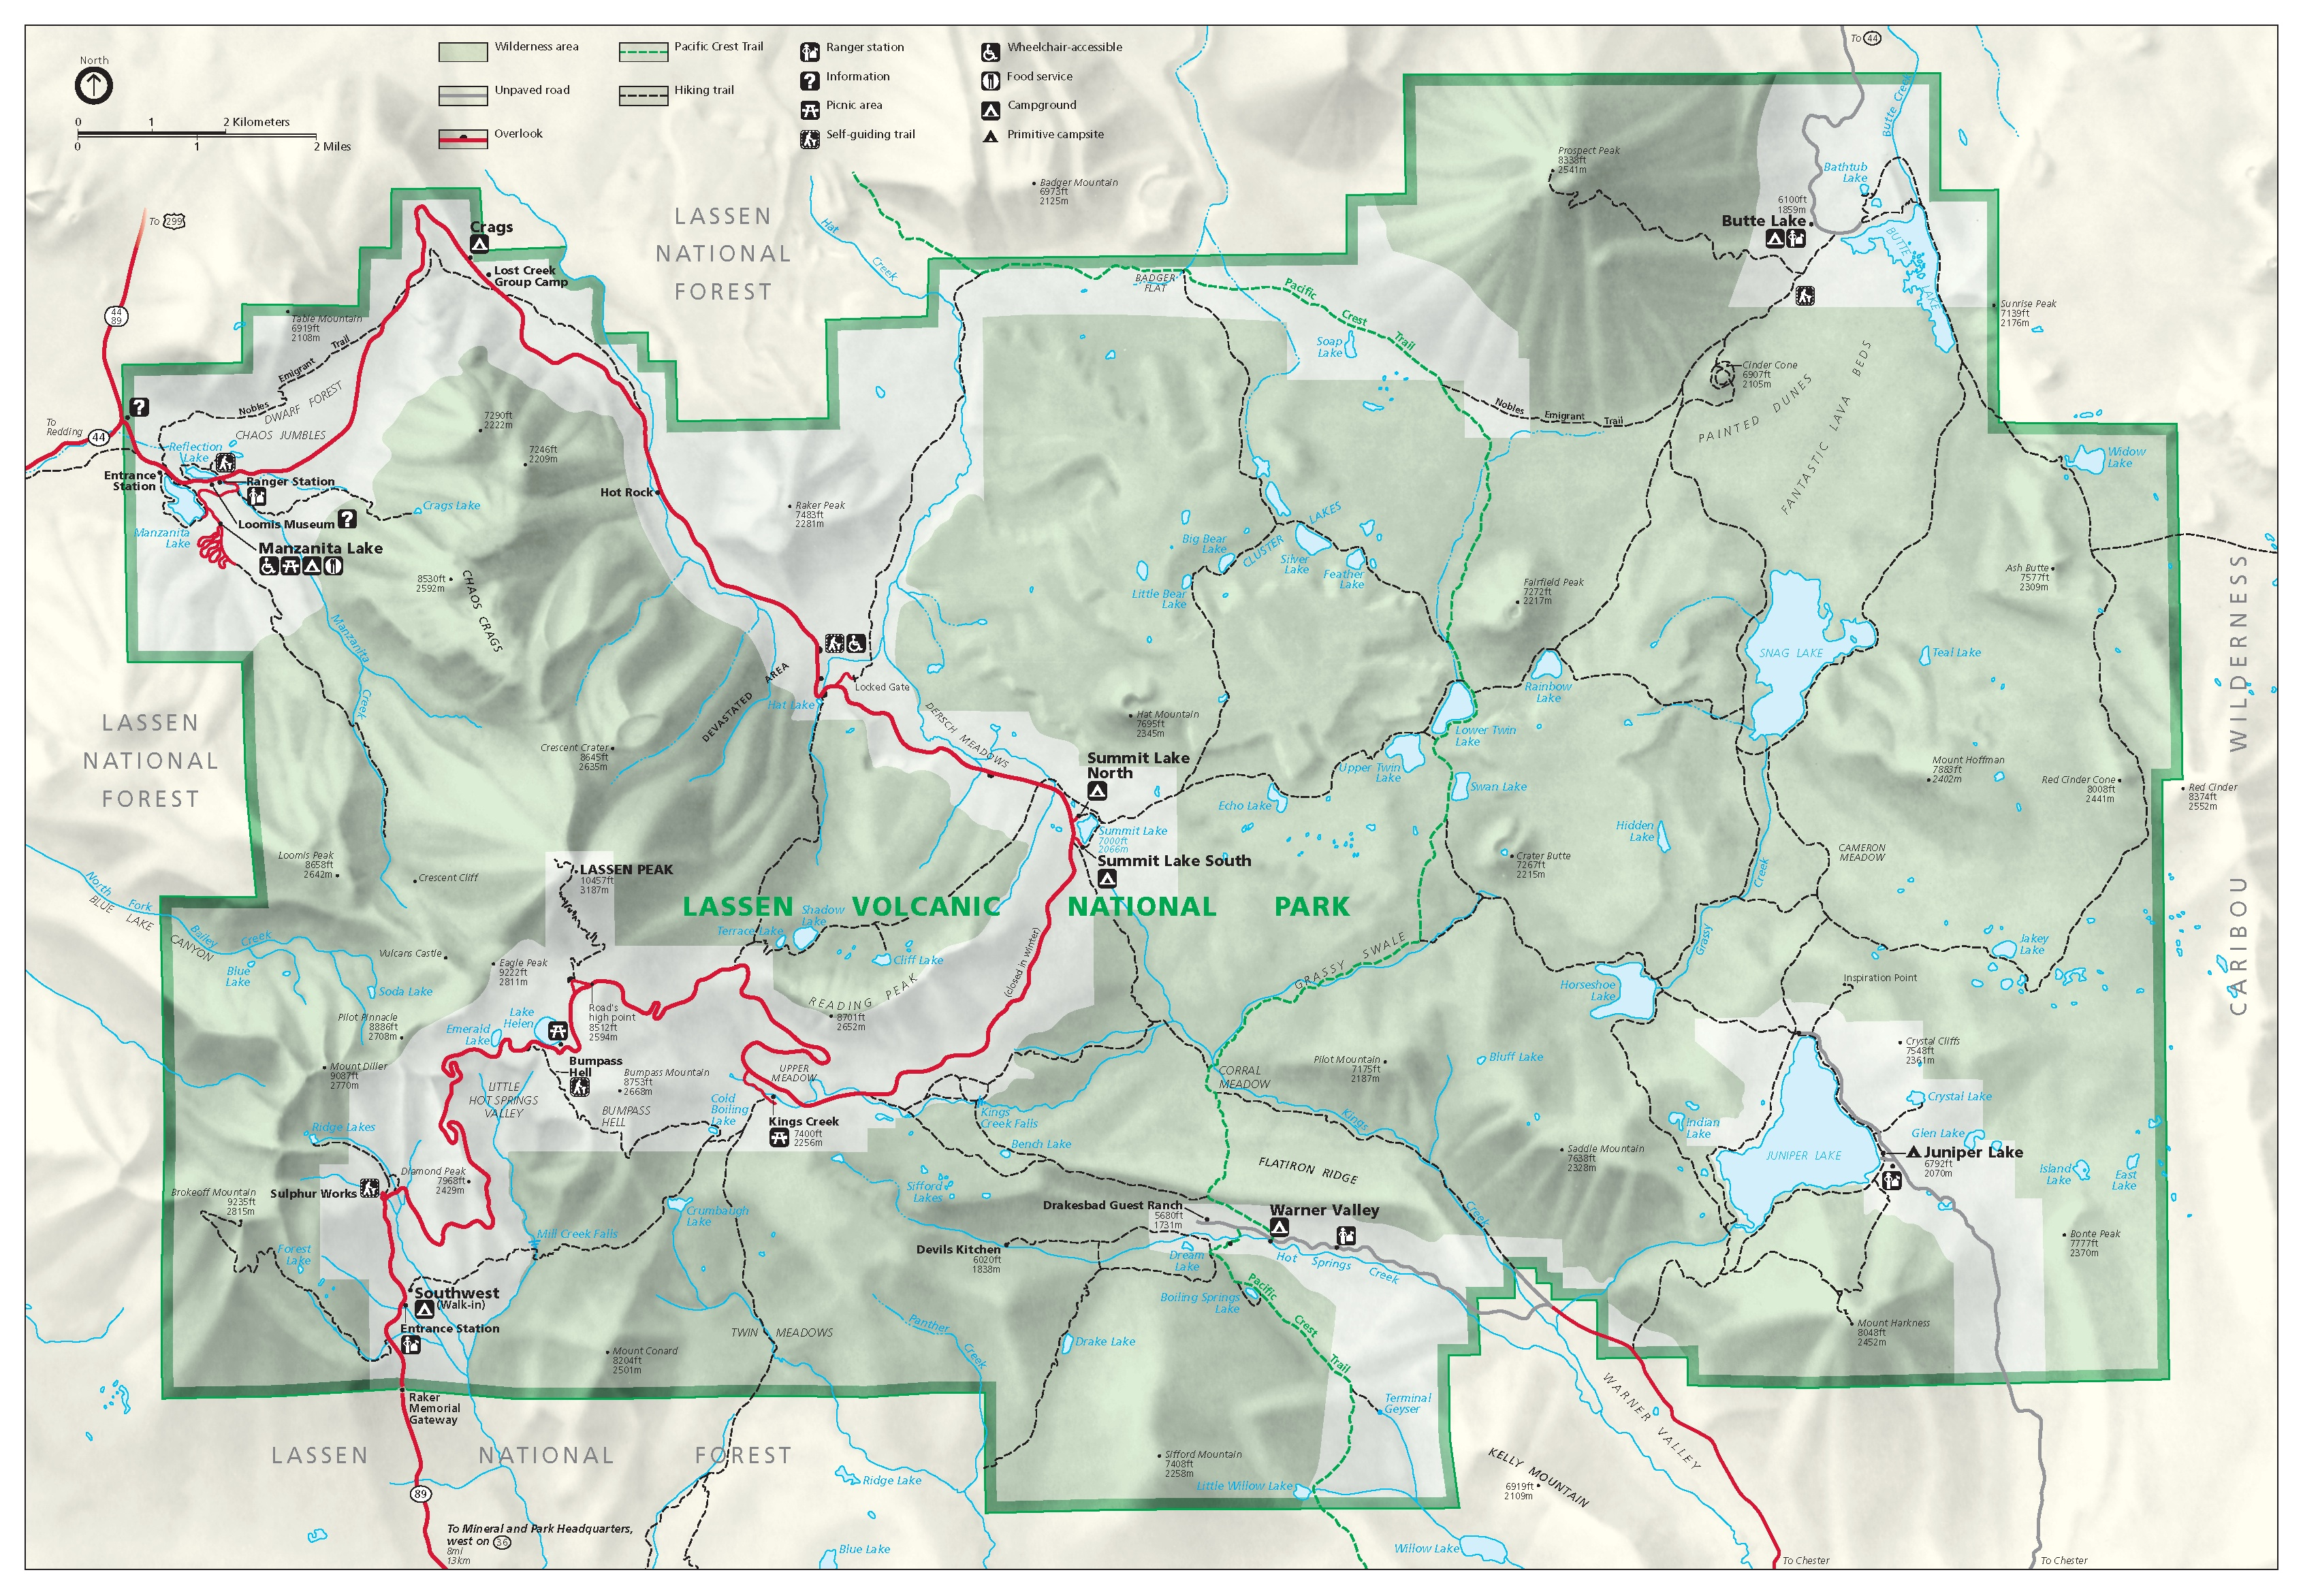 Lassen_Volcanic_National_Park_map